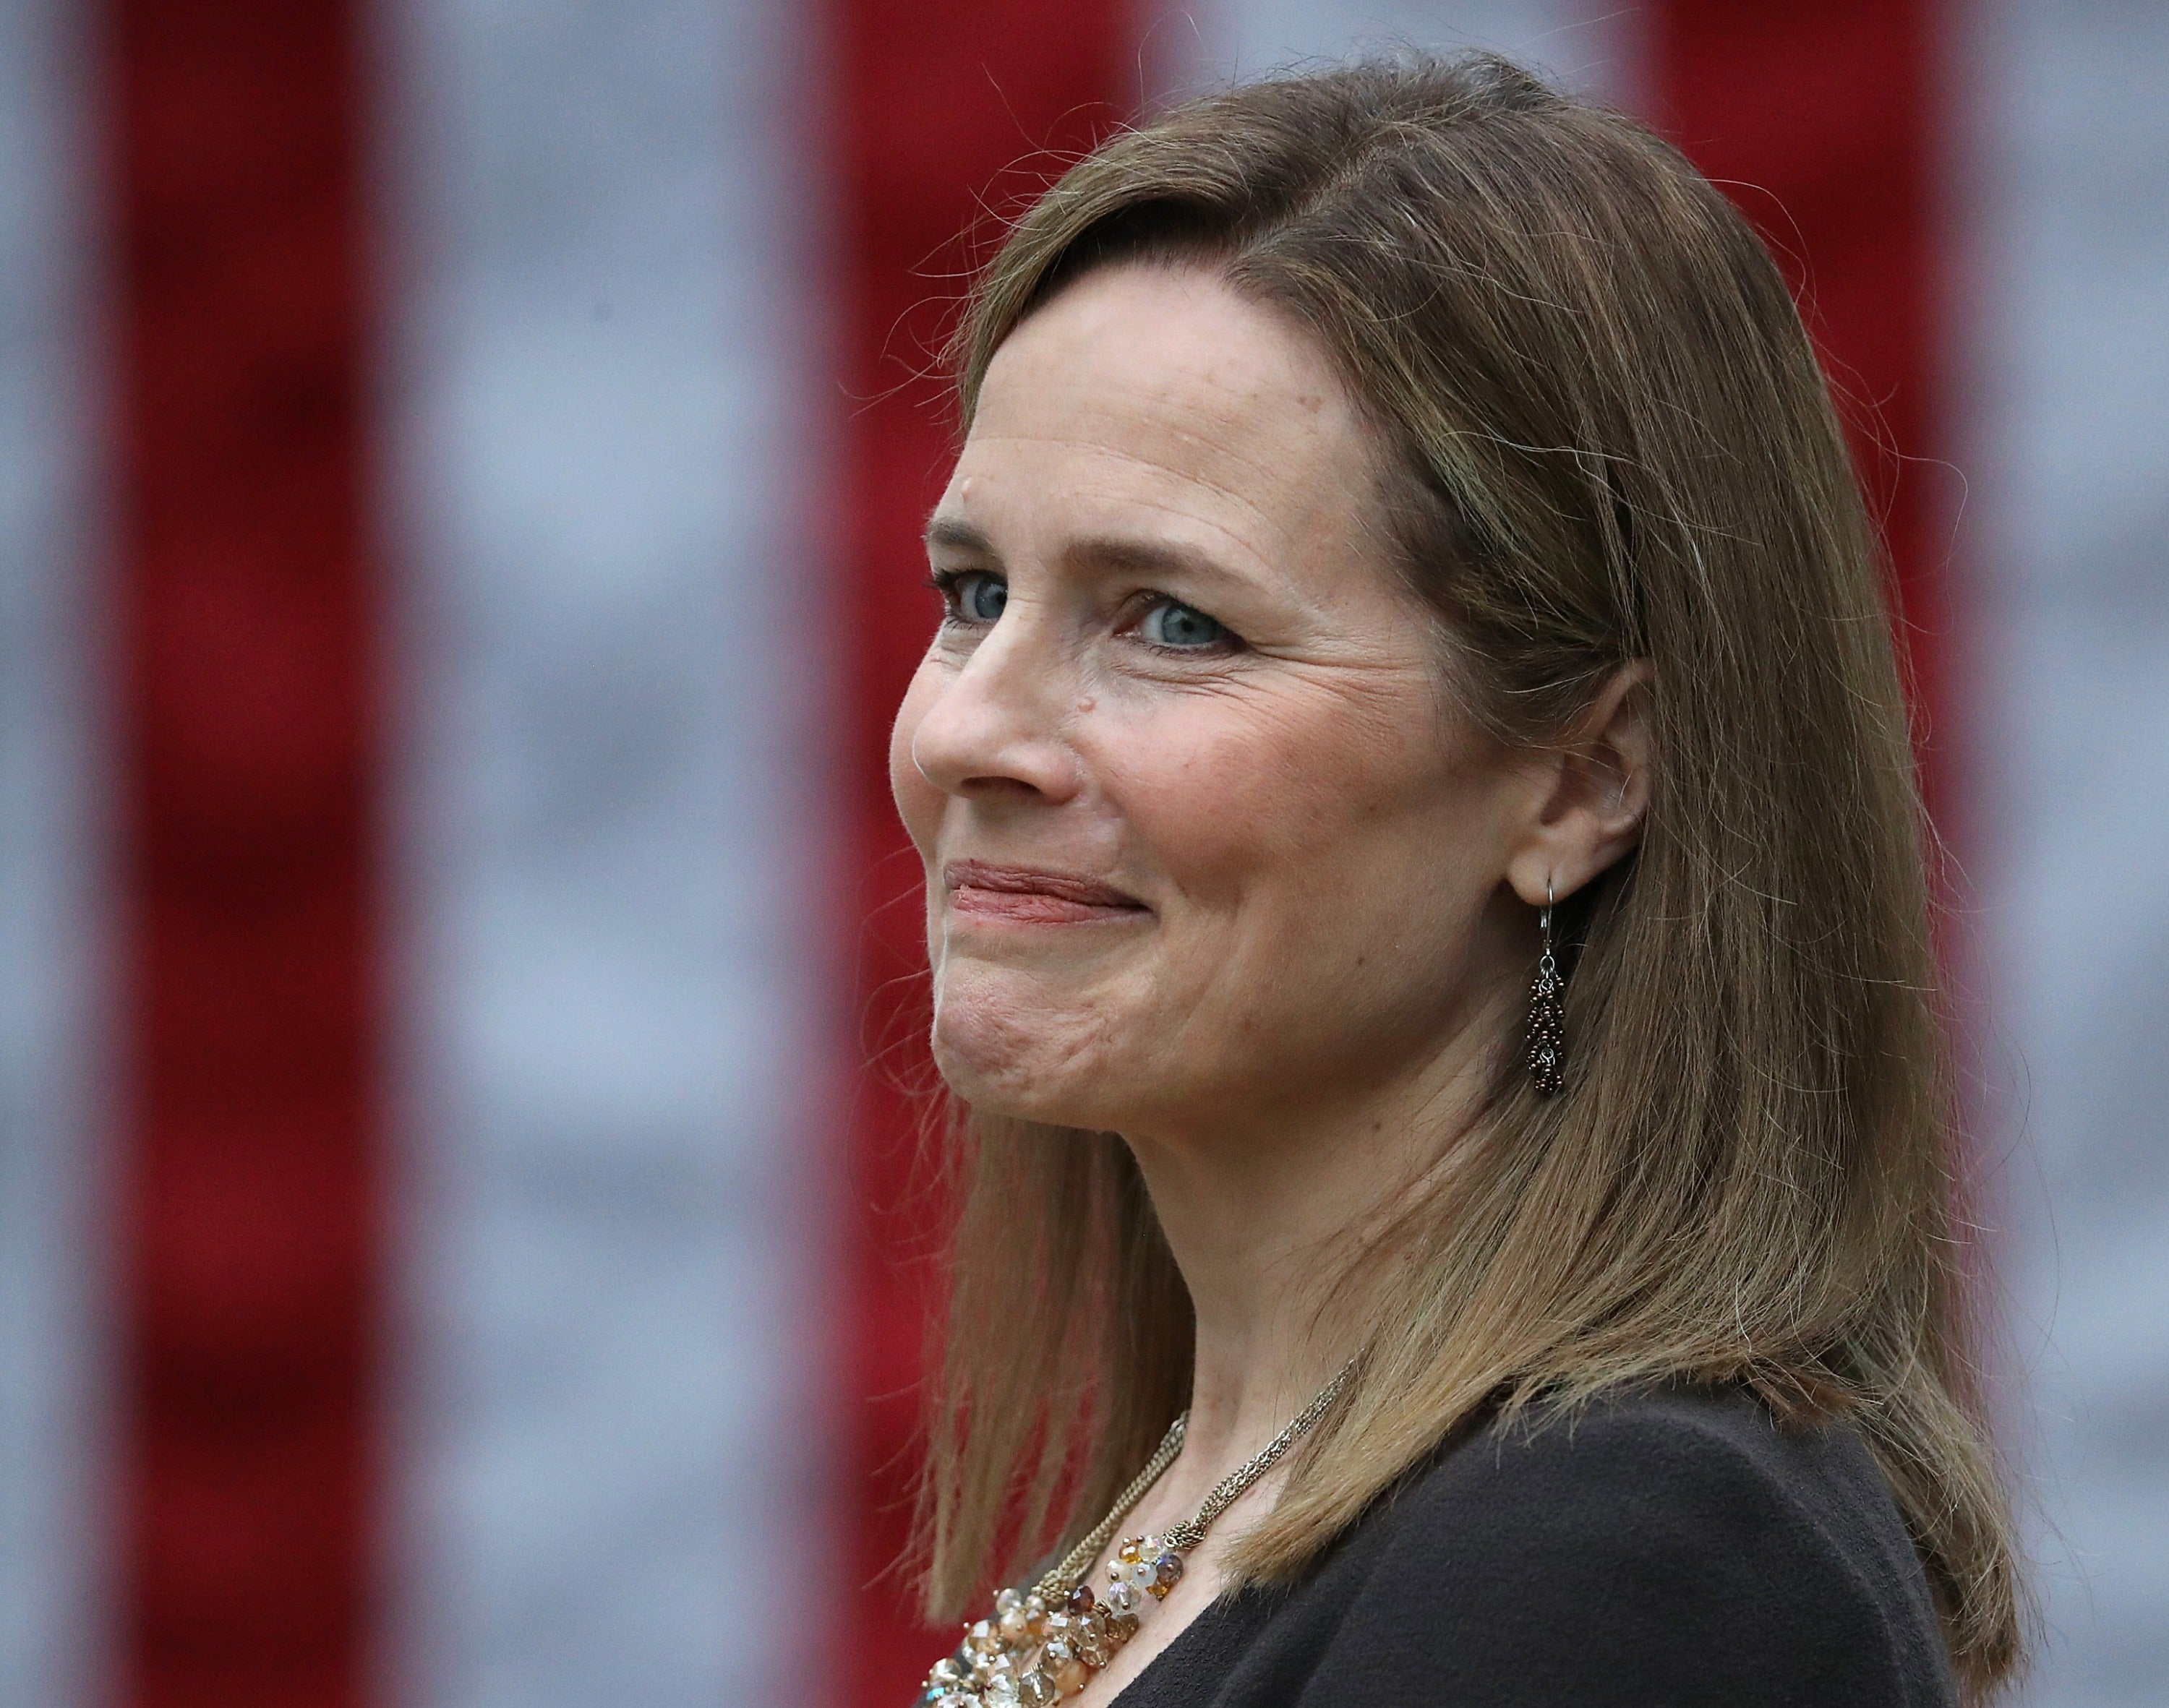 Amy Coney Barrett to hear climate lawsuit against Shell despite conflict of interest claims